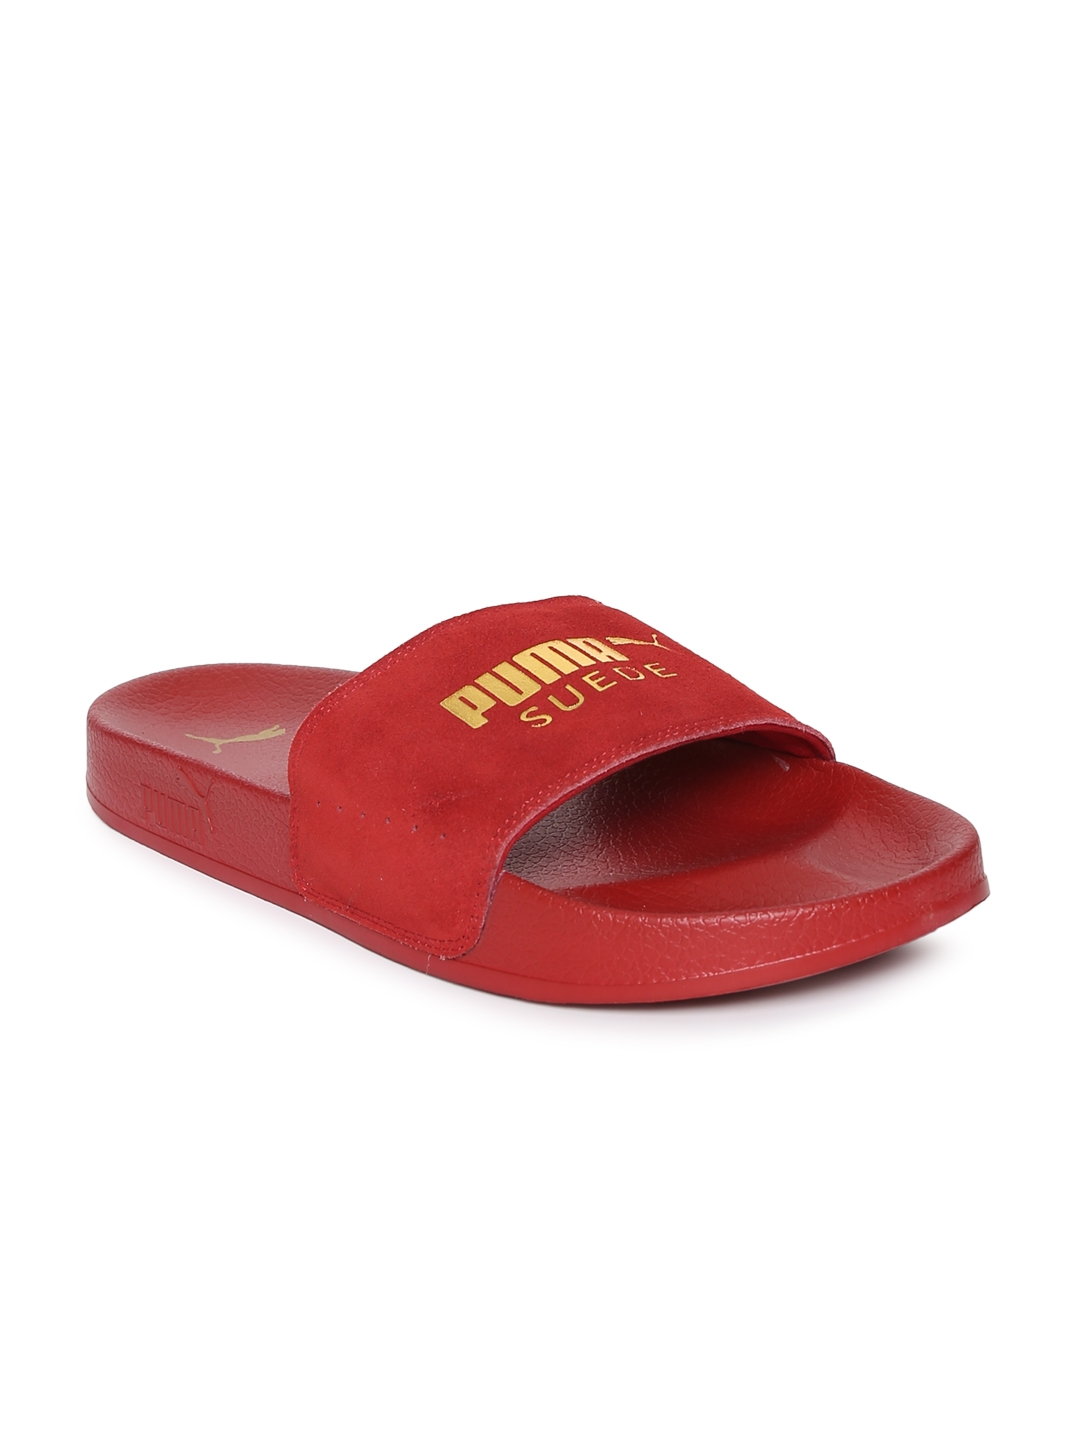 Buy Puma Men Red Leadcat Suede Slides - Flip Flops for Men 2429899 ... fa3e4c330